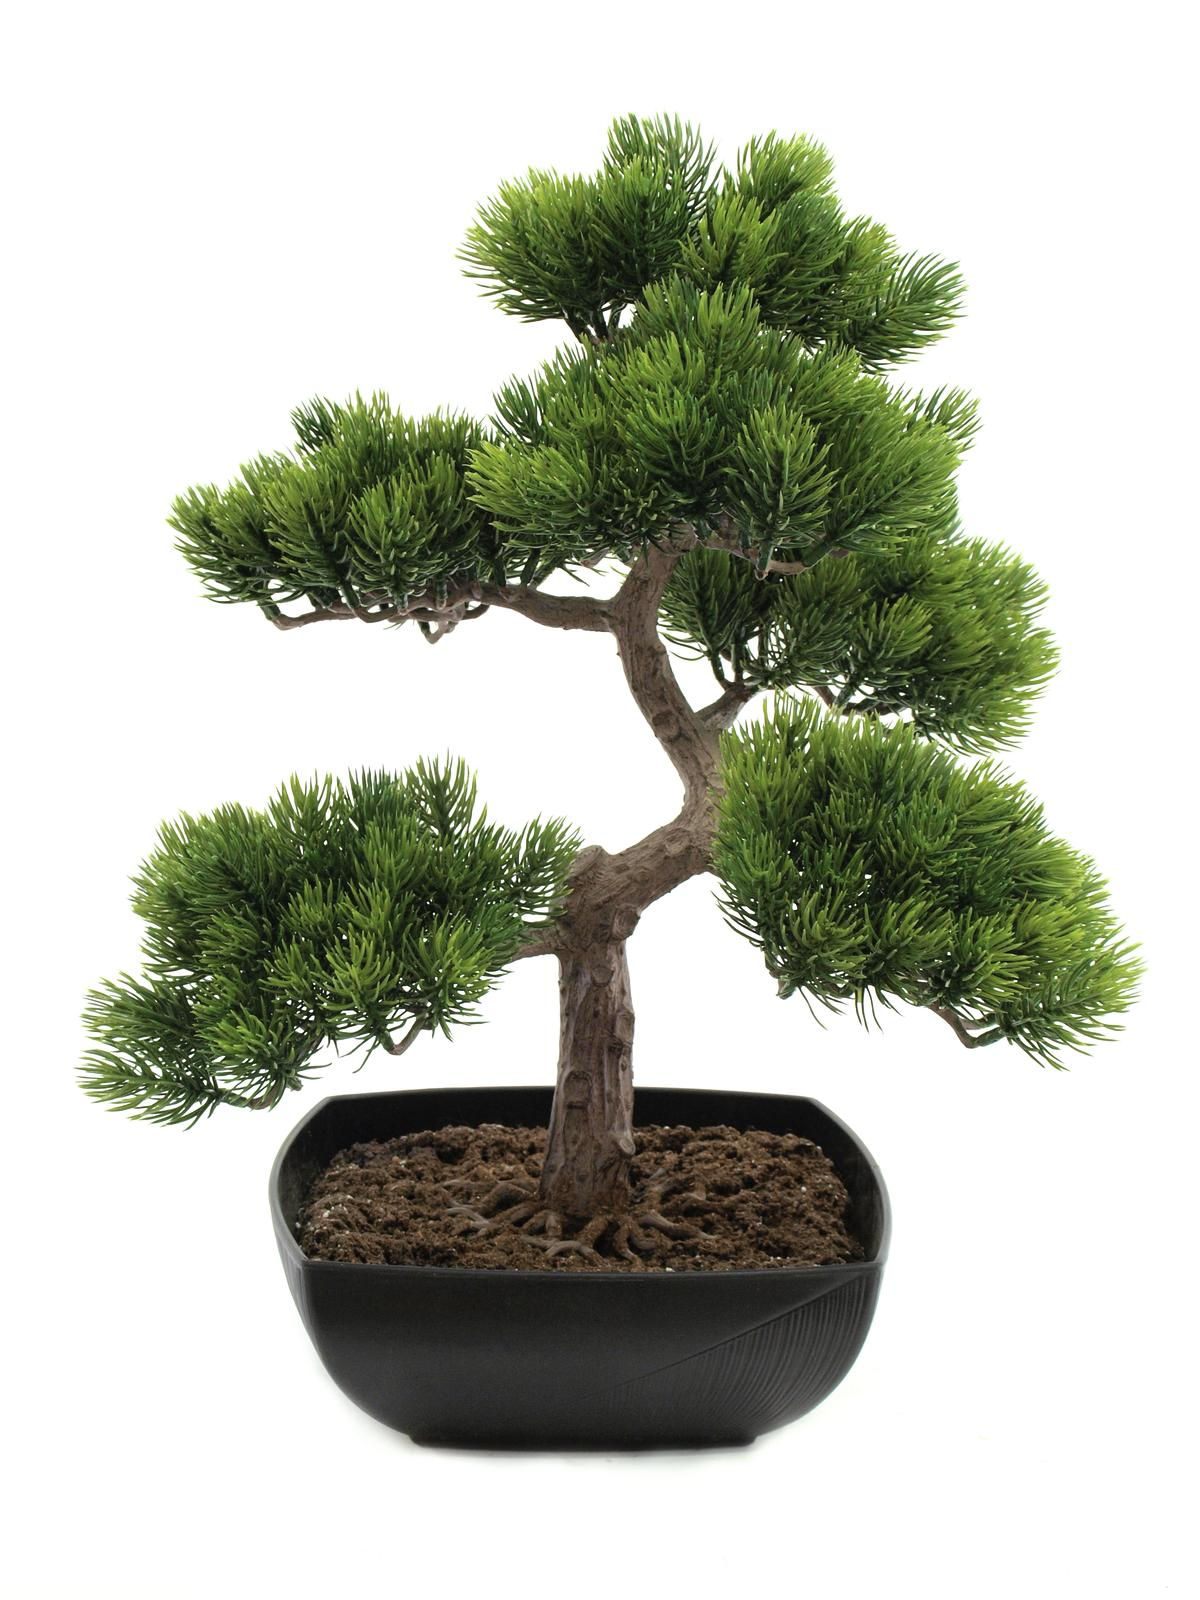 EUROPALMS Bonsai-Pinie, Kunstpflanze, 50cm